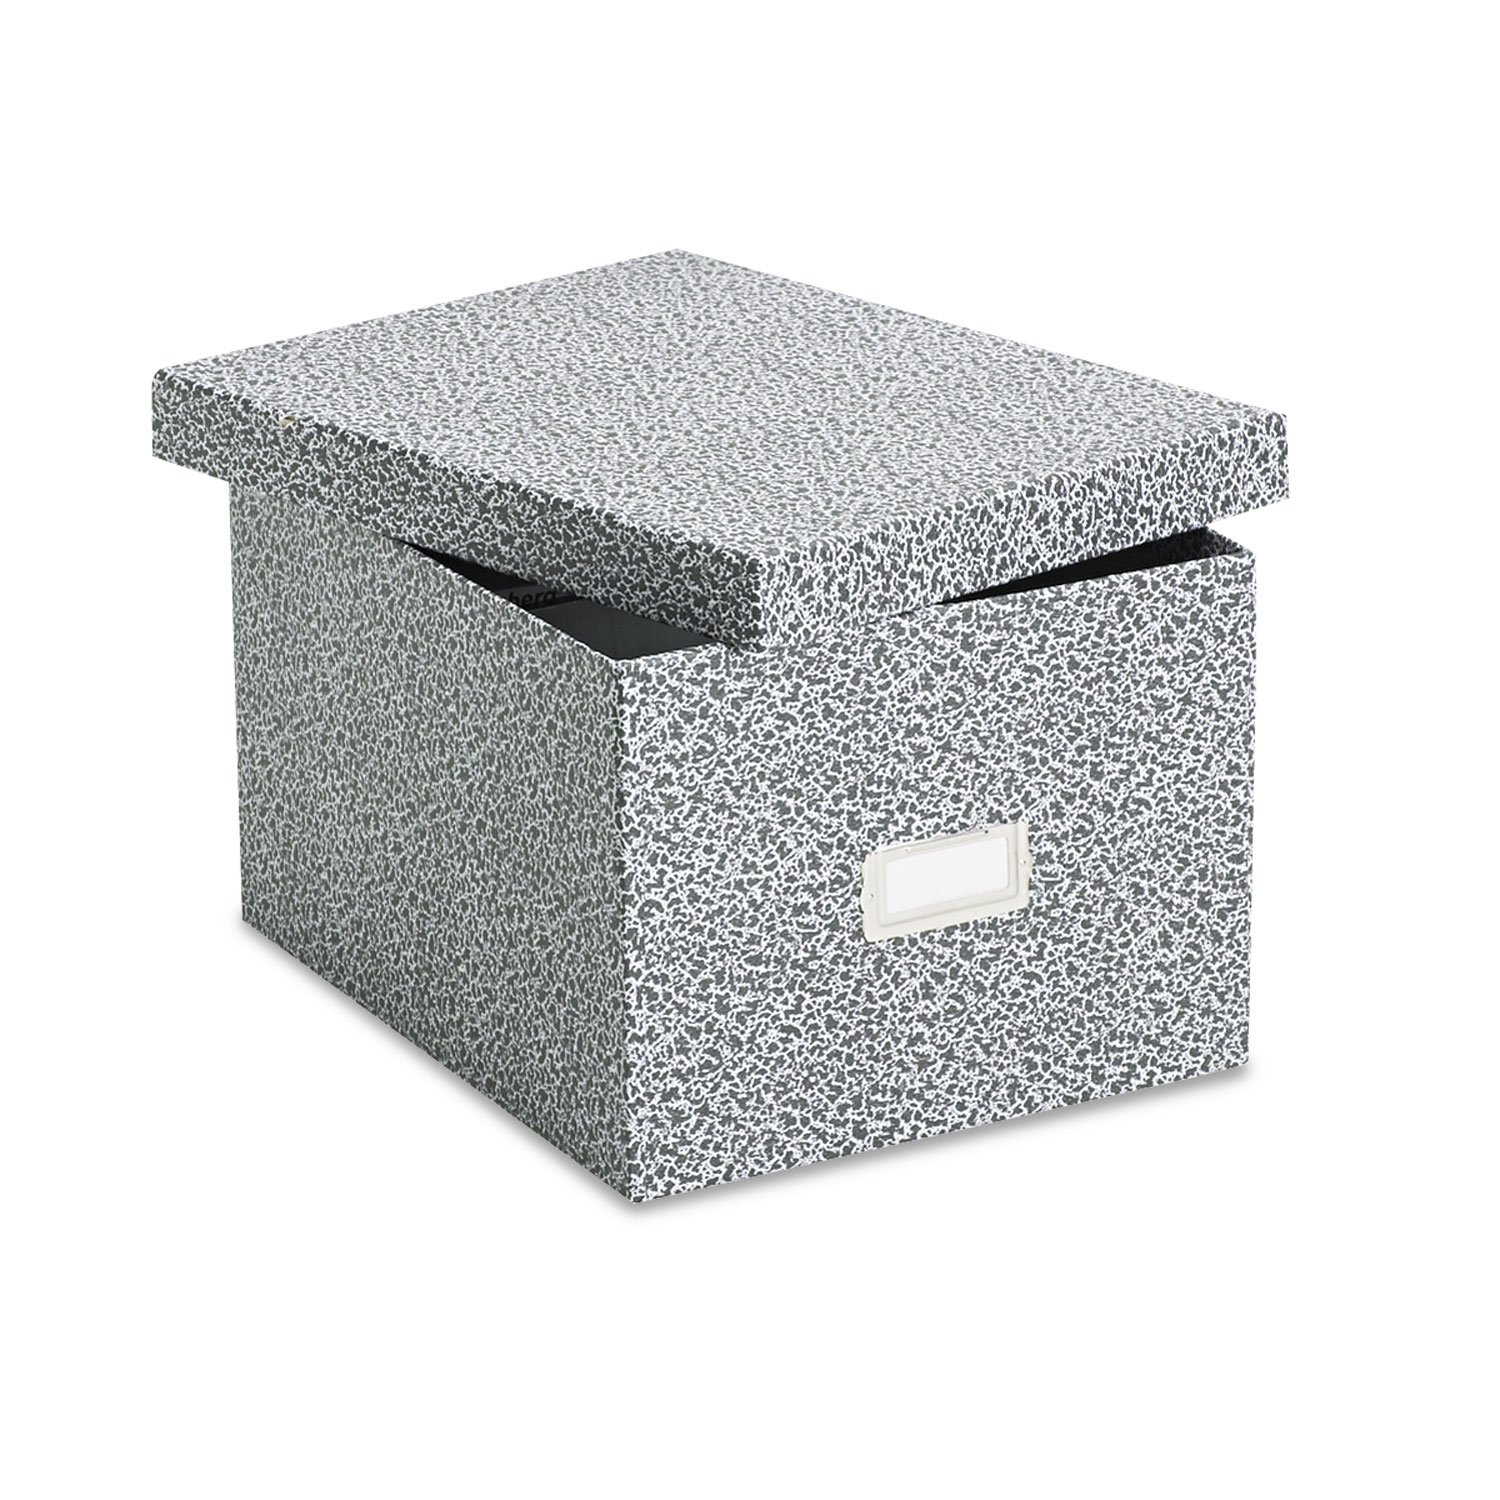 OXF40591 - Oxford Plastic Index Card Boxes w/Lids by Oxford